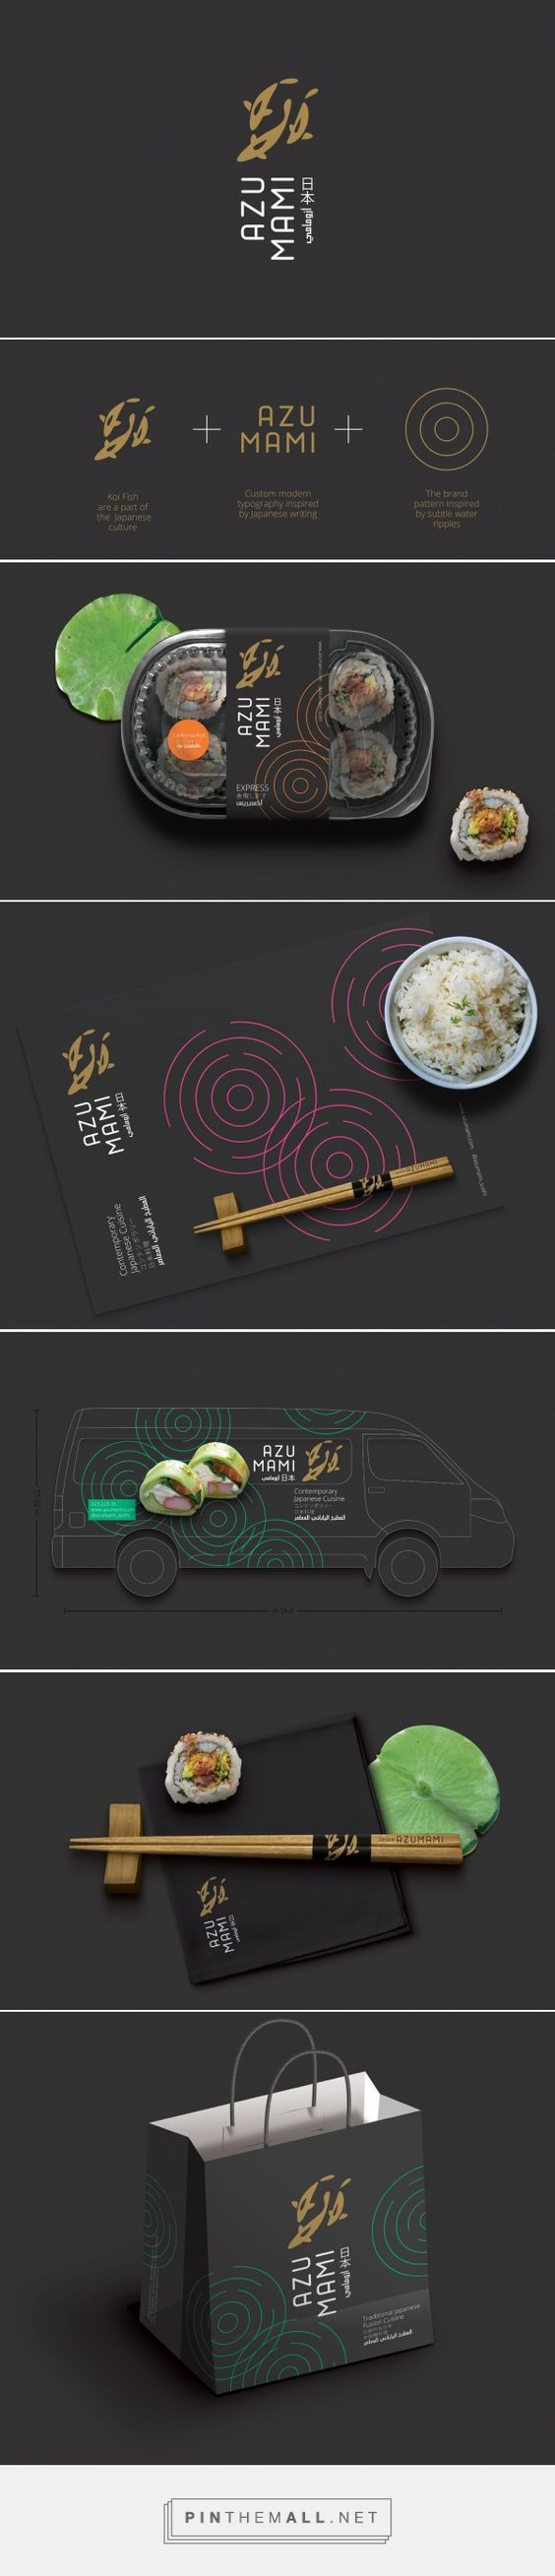 Branding, graphic design and packaging for Azumami on Behance by Studio AIO Shuwaikh, Kuwait curated by Packaging Diva PD. Who's ready for some sushi?: